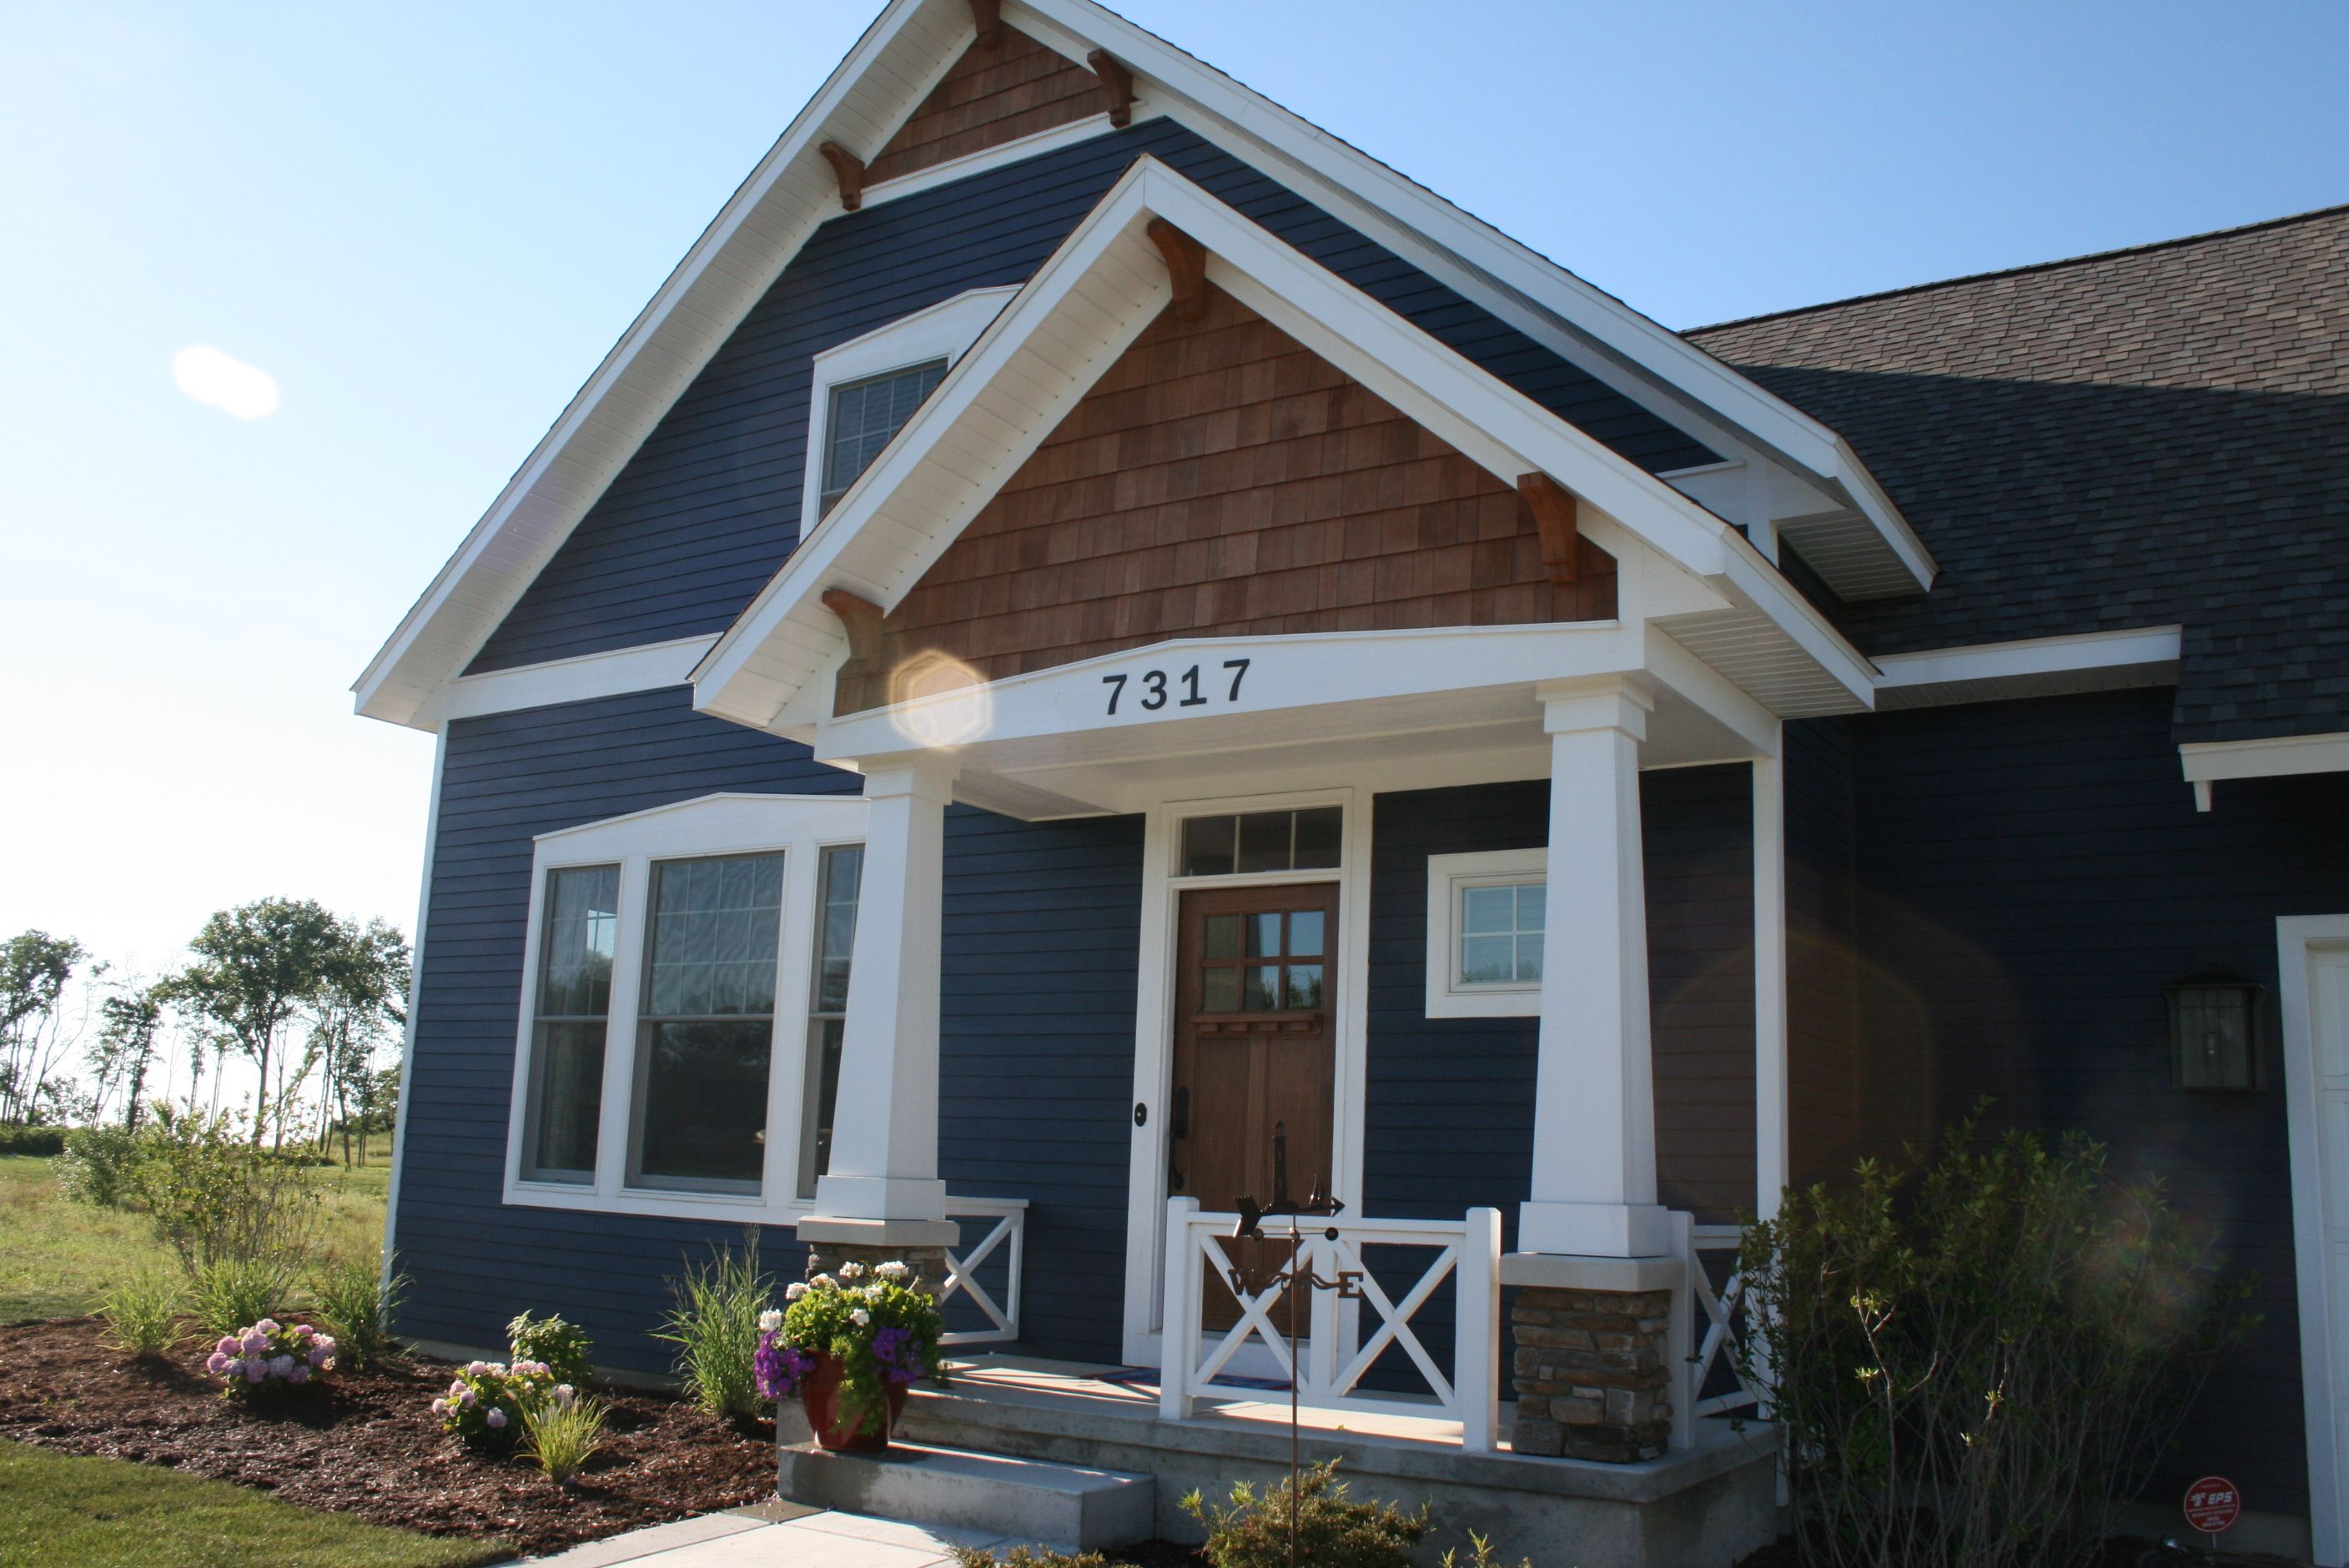 Beach house craftsman style porch hardie board painted for Craftsman exterior color schemes